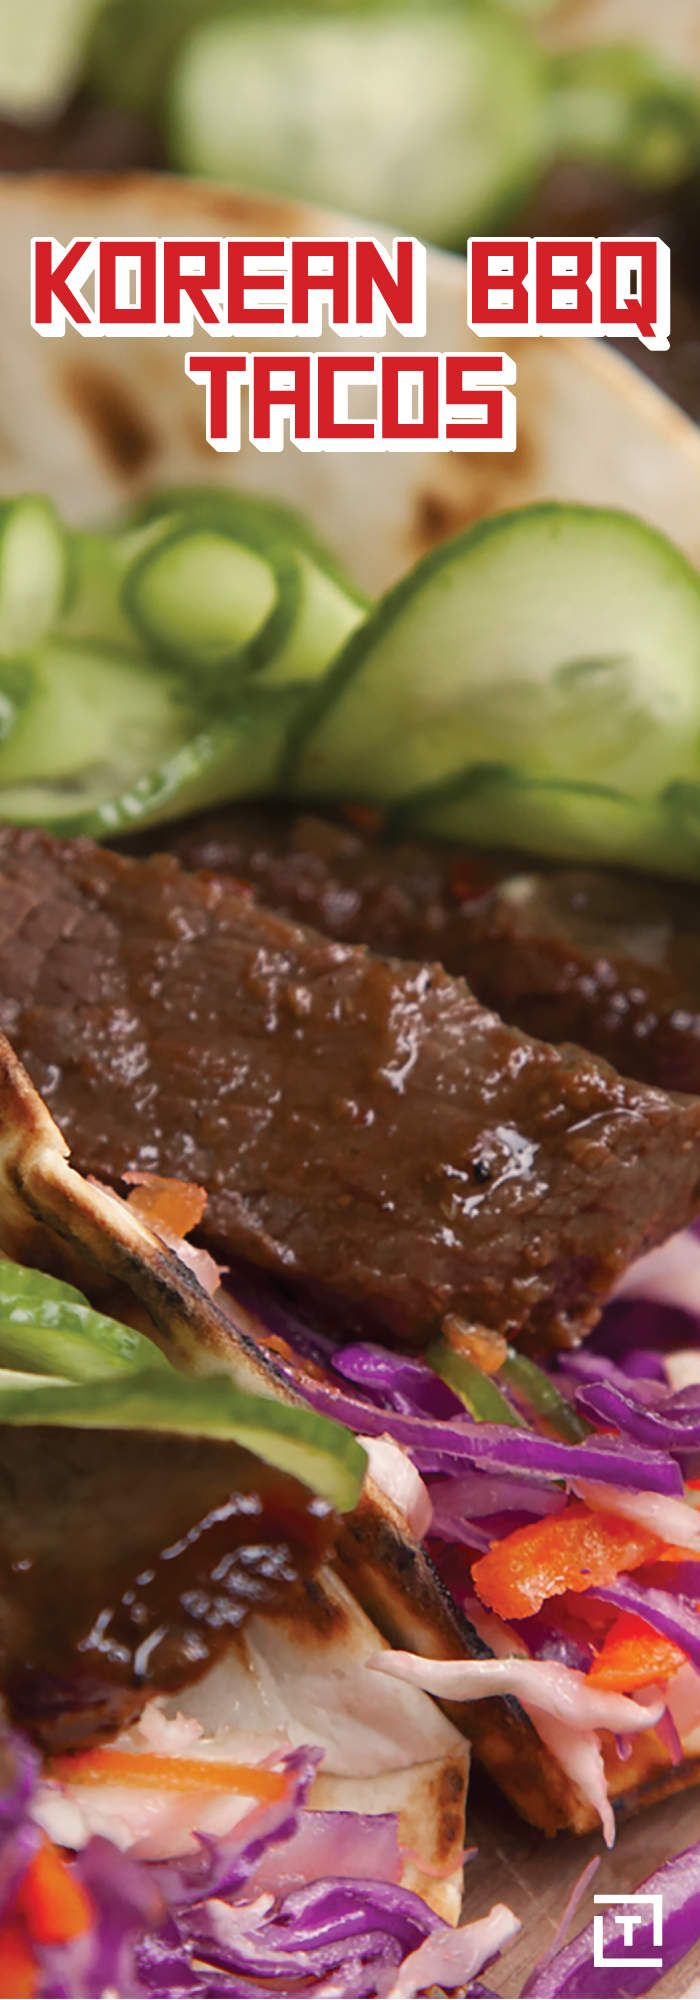 For those of you who haven't heard, Korean barbecue is absolutely delicious. Take a minute to educate yourself -- or just take our word for it -- and then, if you're still hesitant, make the following recipe by Food Steez for Korean barbecue tacos, providing you a familiar delivery system for your newly honed Korean BBQ expertise.